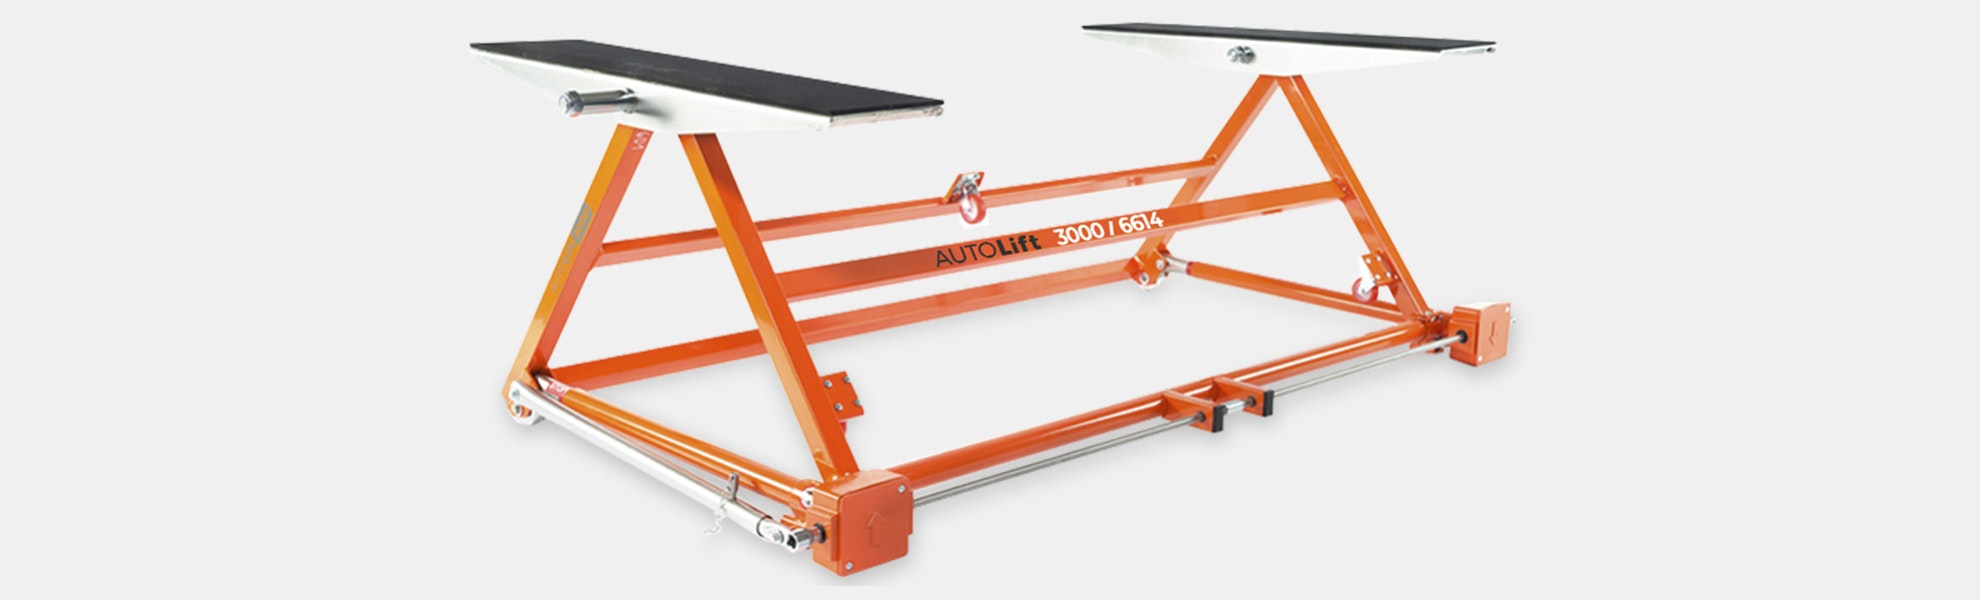 AUTOLift3000 Portable Tilting Car Lift